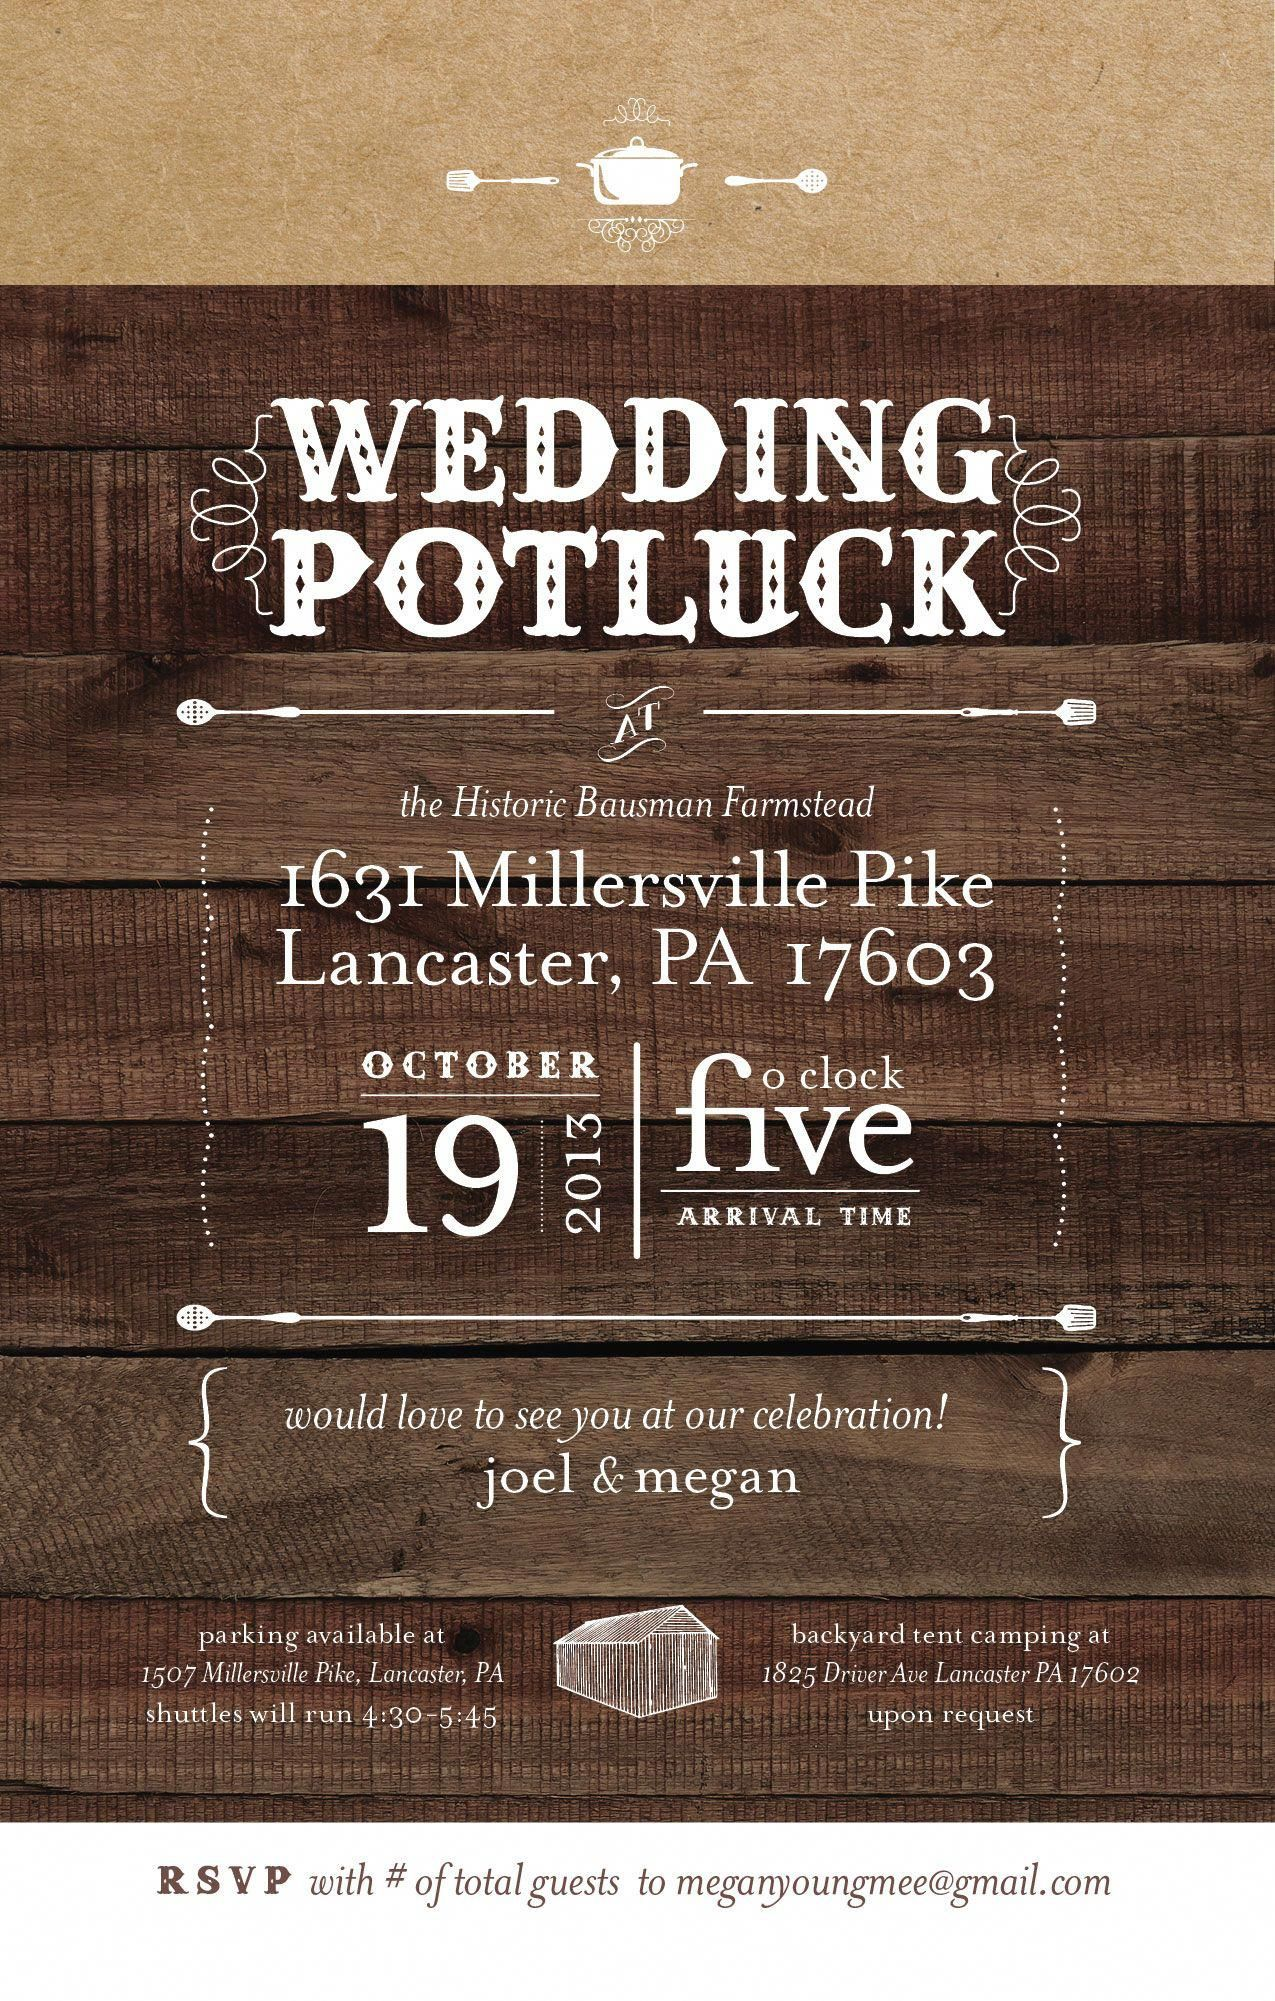 Potluck wedding? Yes! Love this invitation idea and style ...